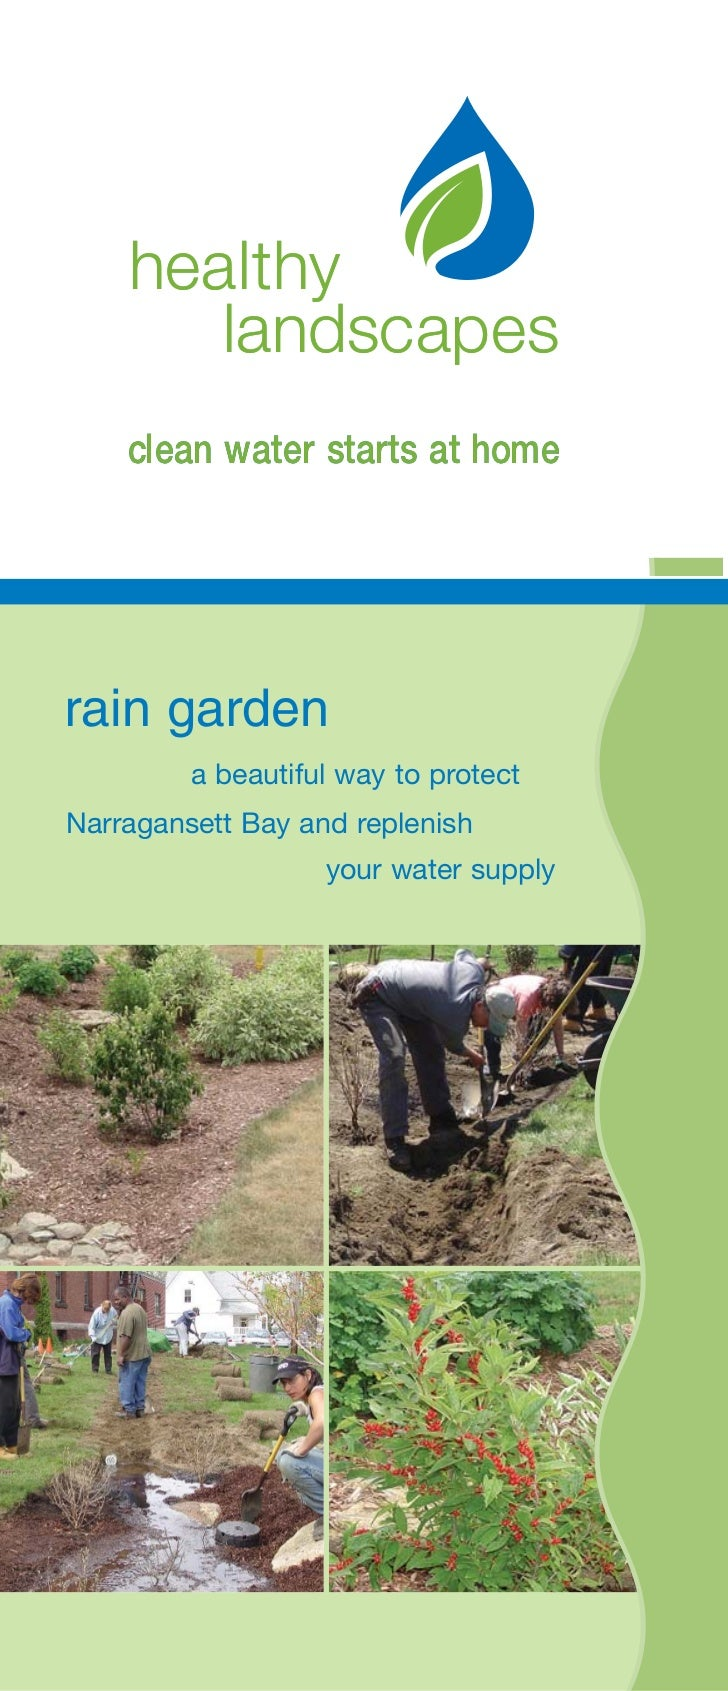 healthy       landscapes    clean water starts at homerain garden         a beautiful way to protectNarragansett Bay and r...